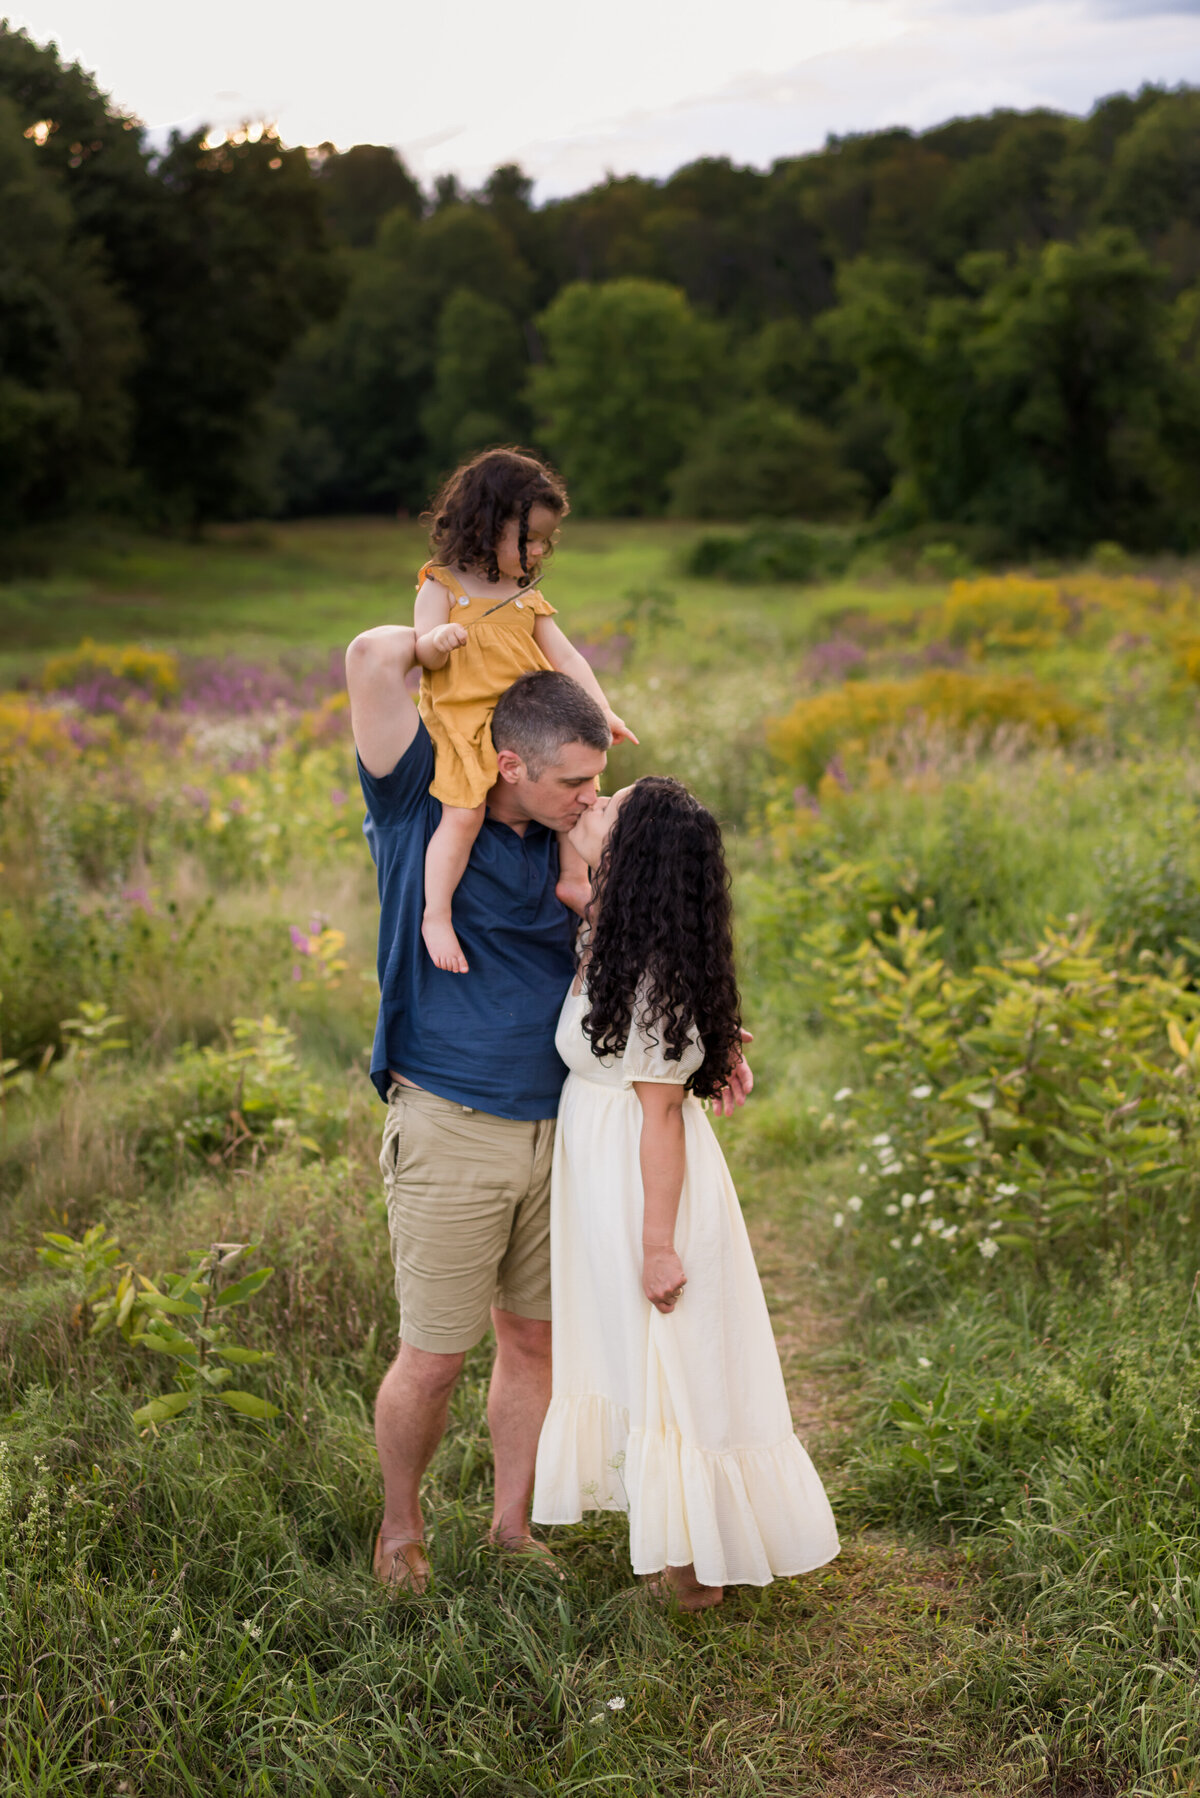 Boston-family-photographer-bella-wang-photography-Lifestyle-session-outdoor-wildflower-90